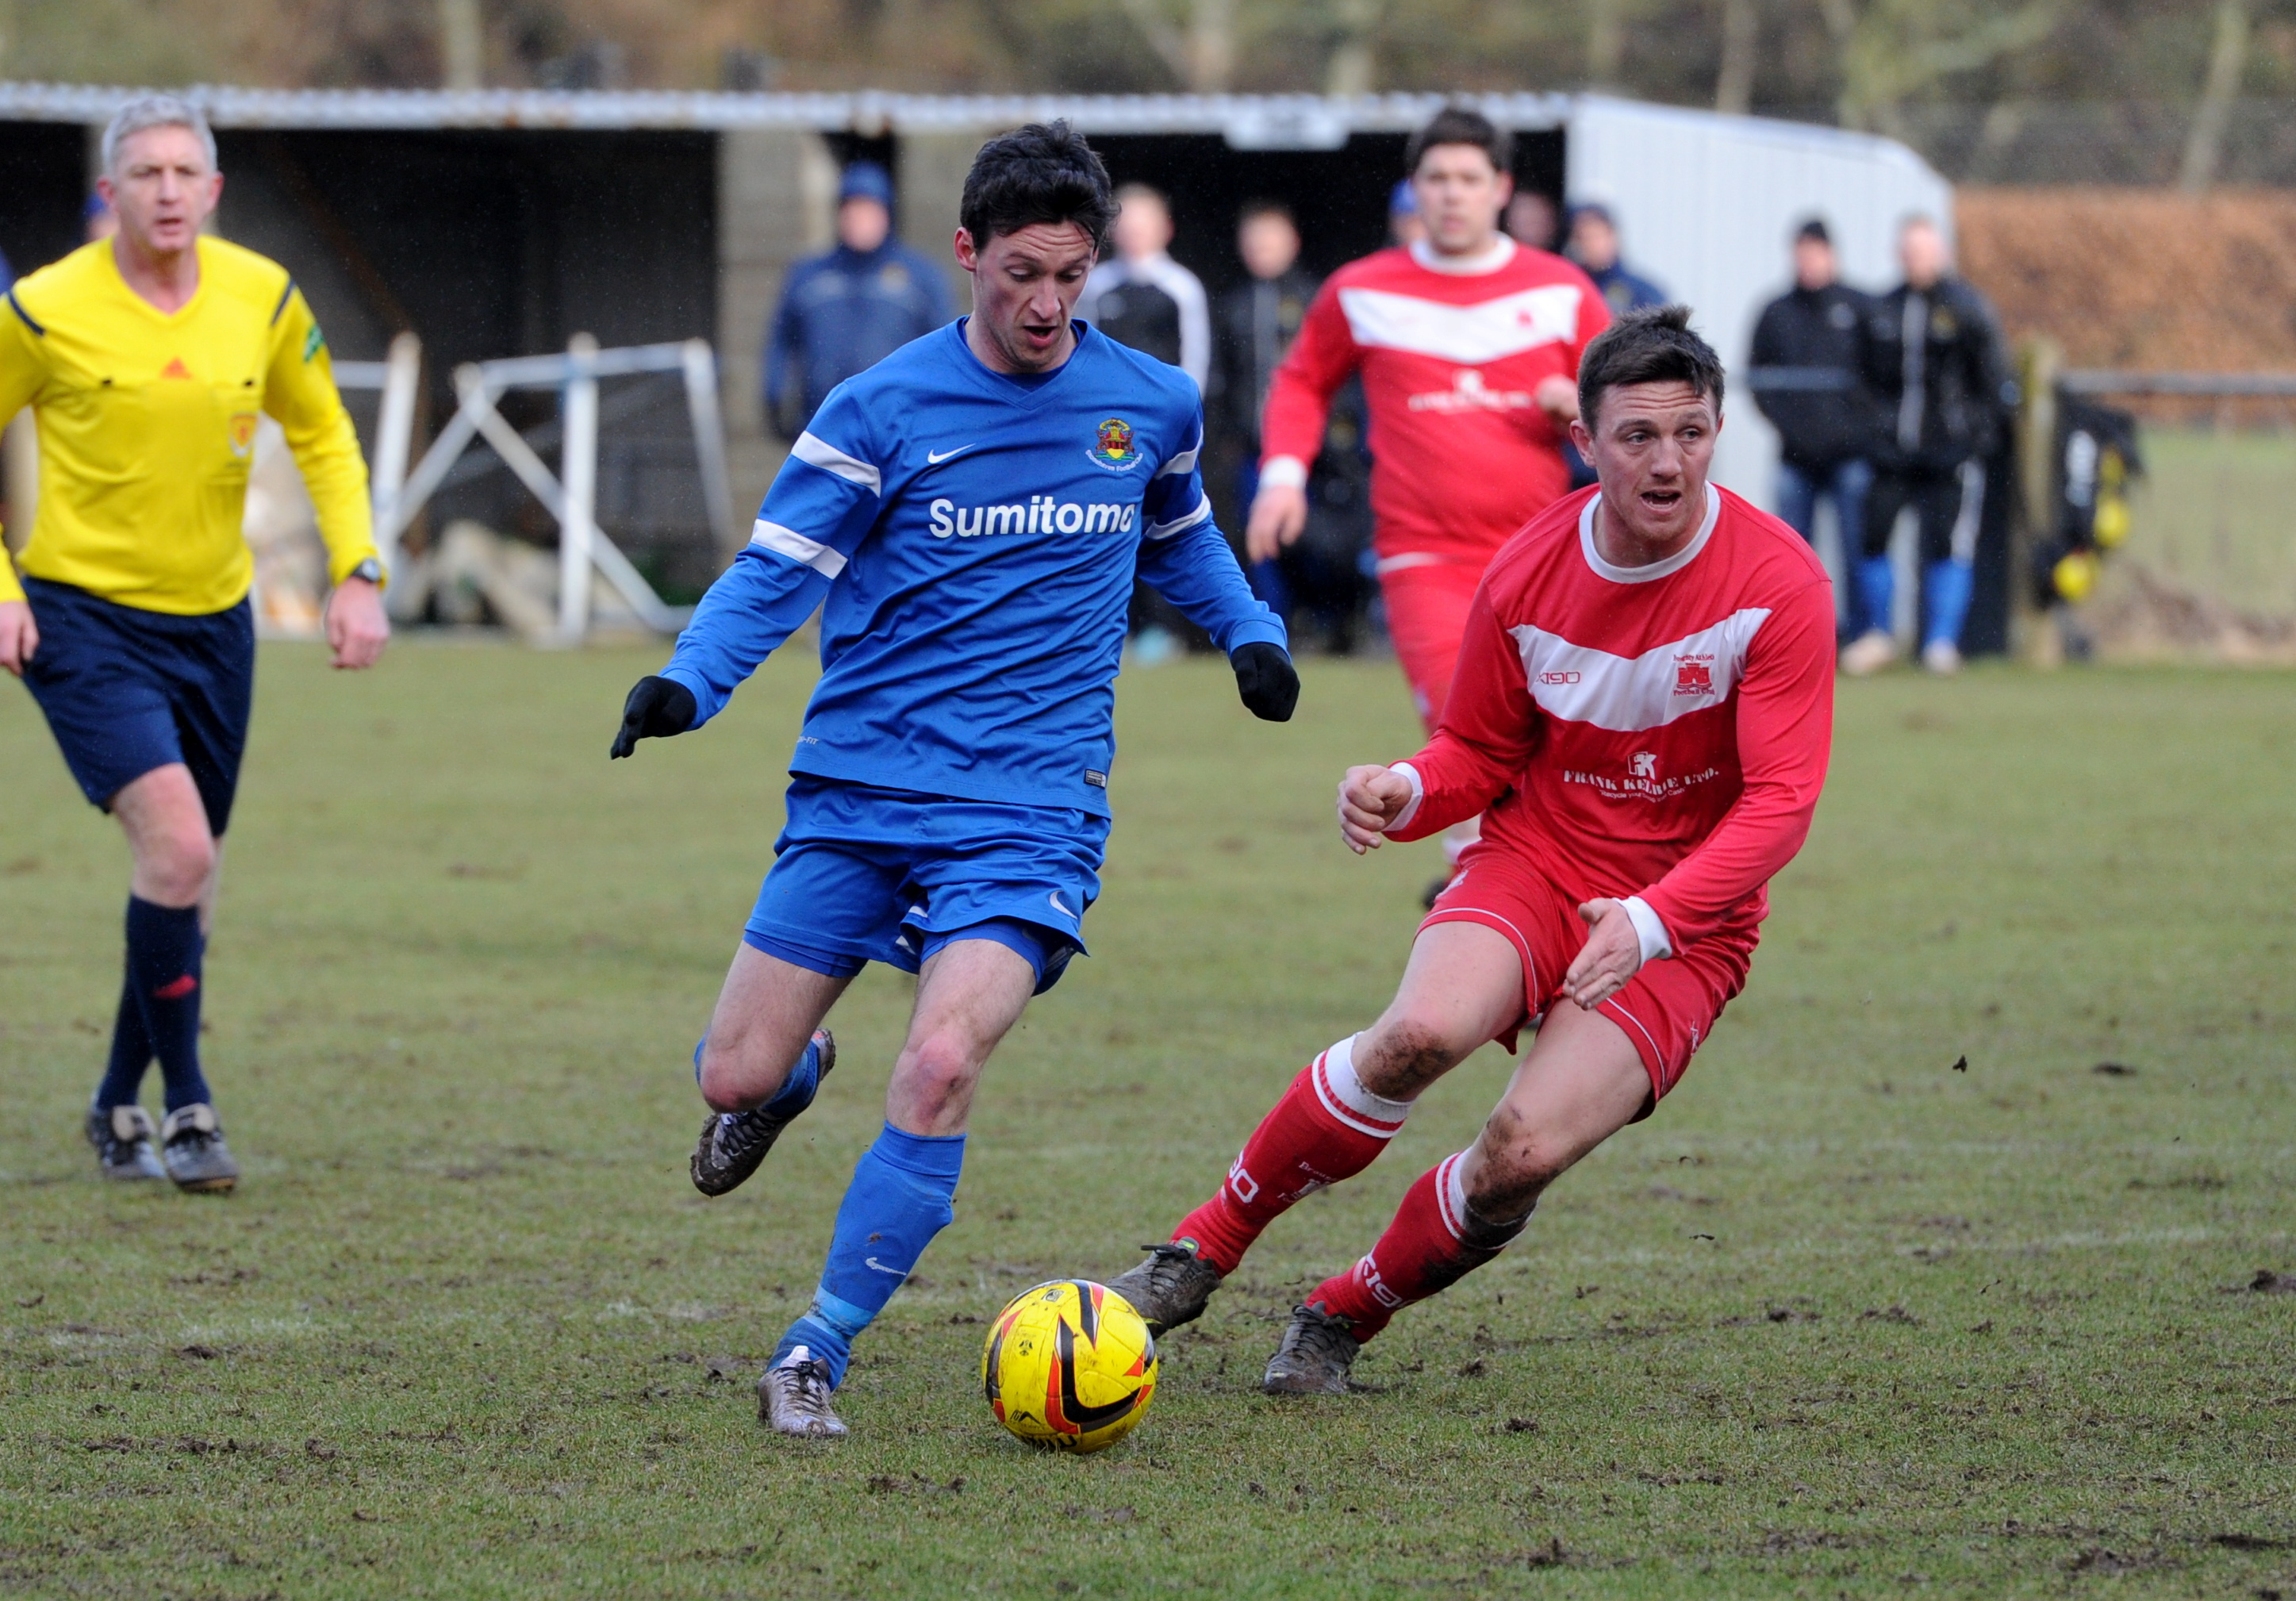 Stonehaven's Robert Armstrong scores to make it 1-1.